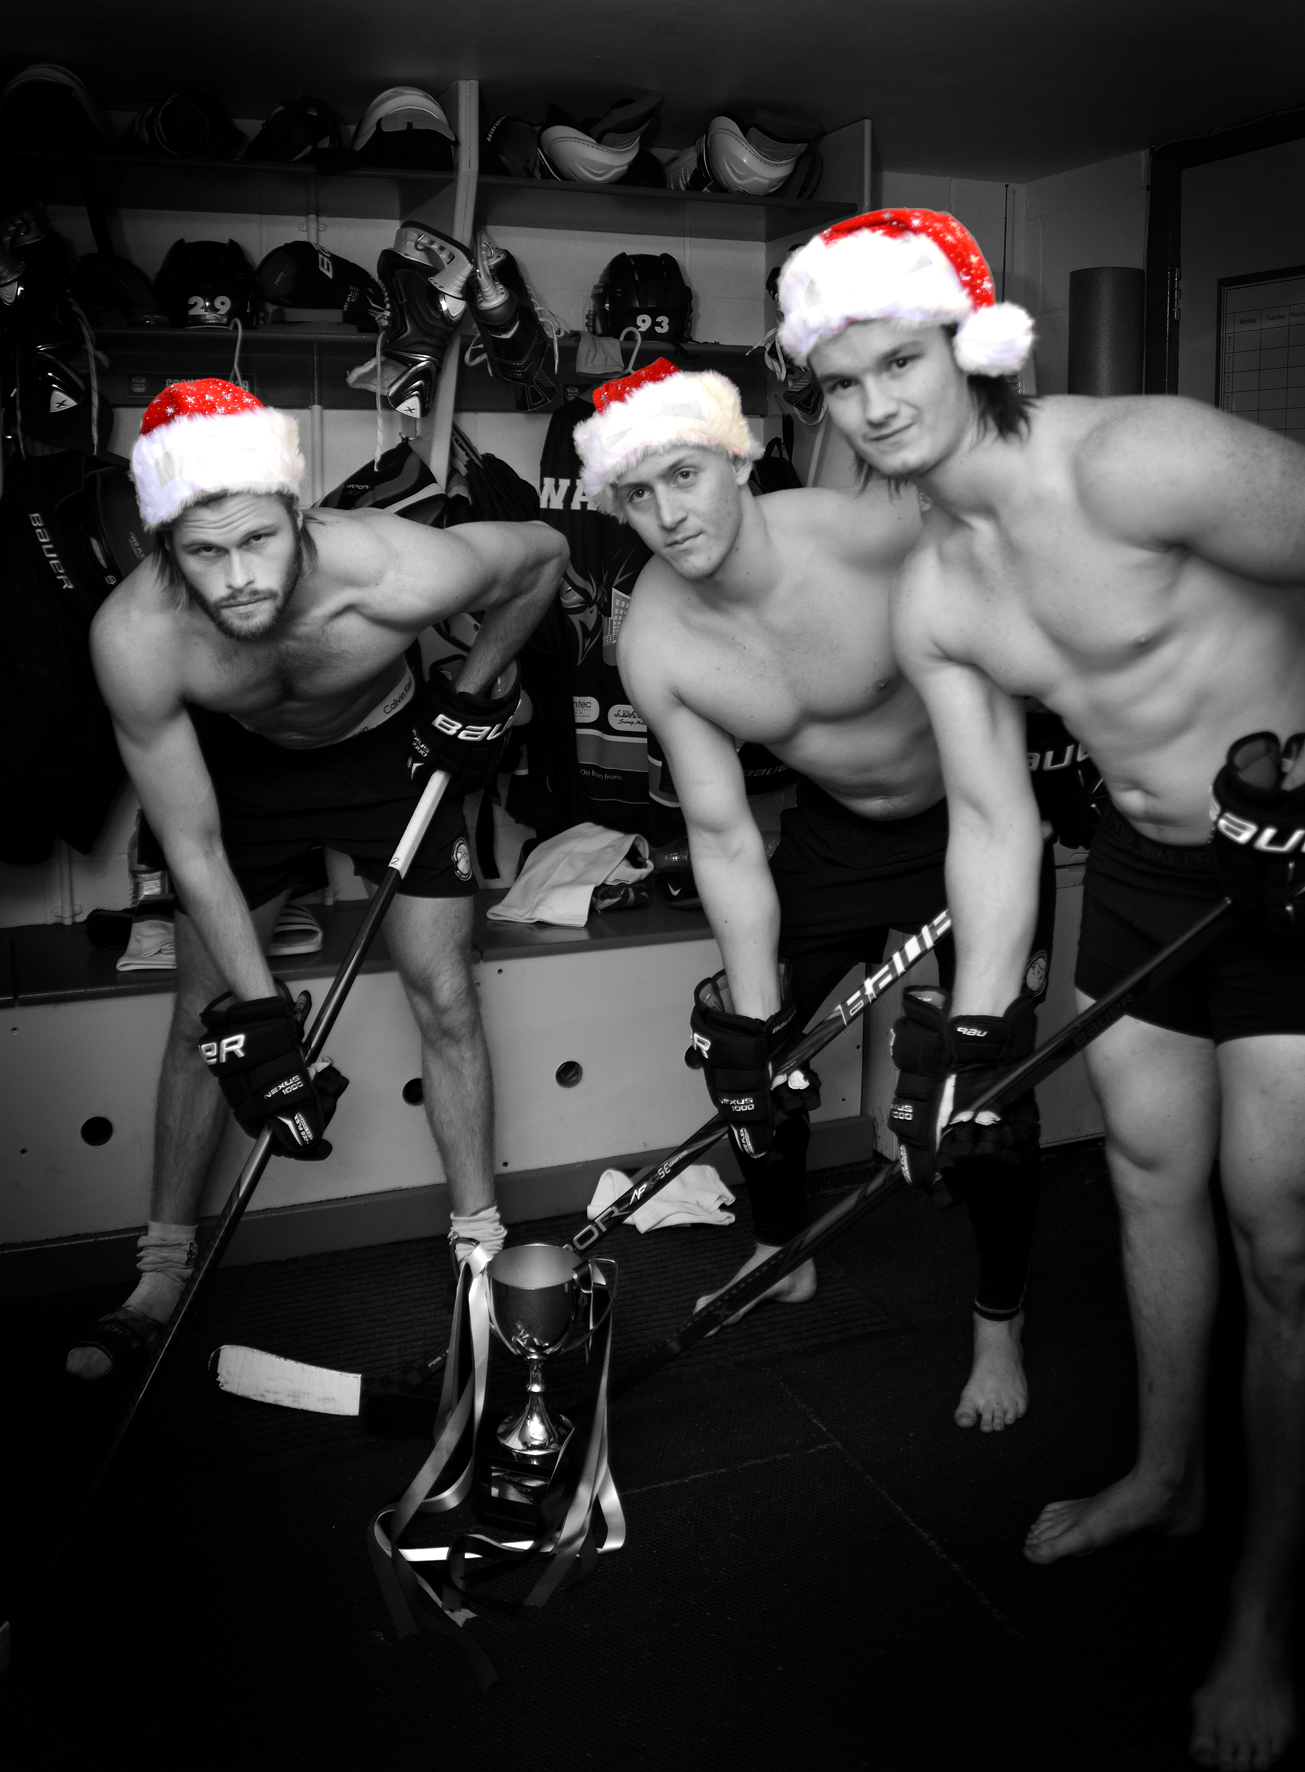 Manchester charities join forces to crowd fund and create a naked sports calendar!